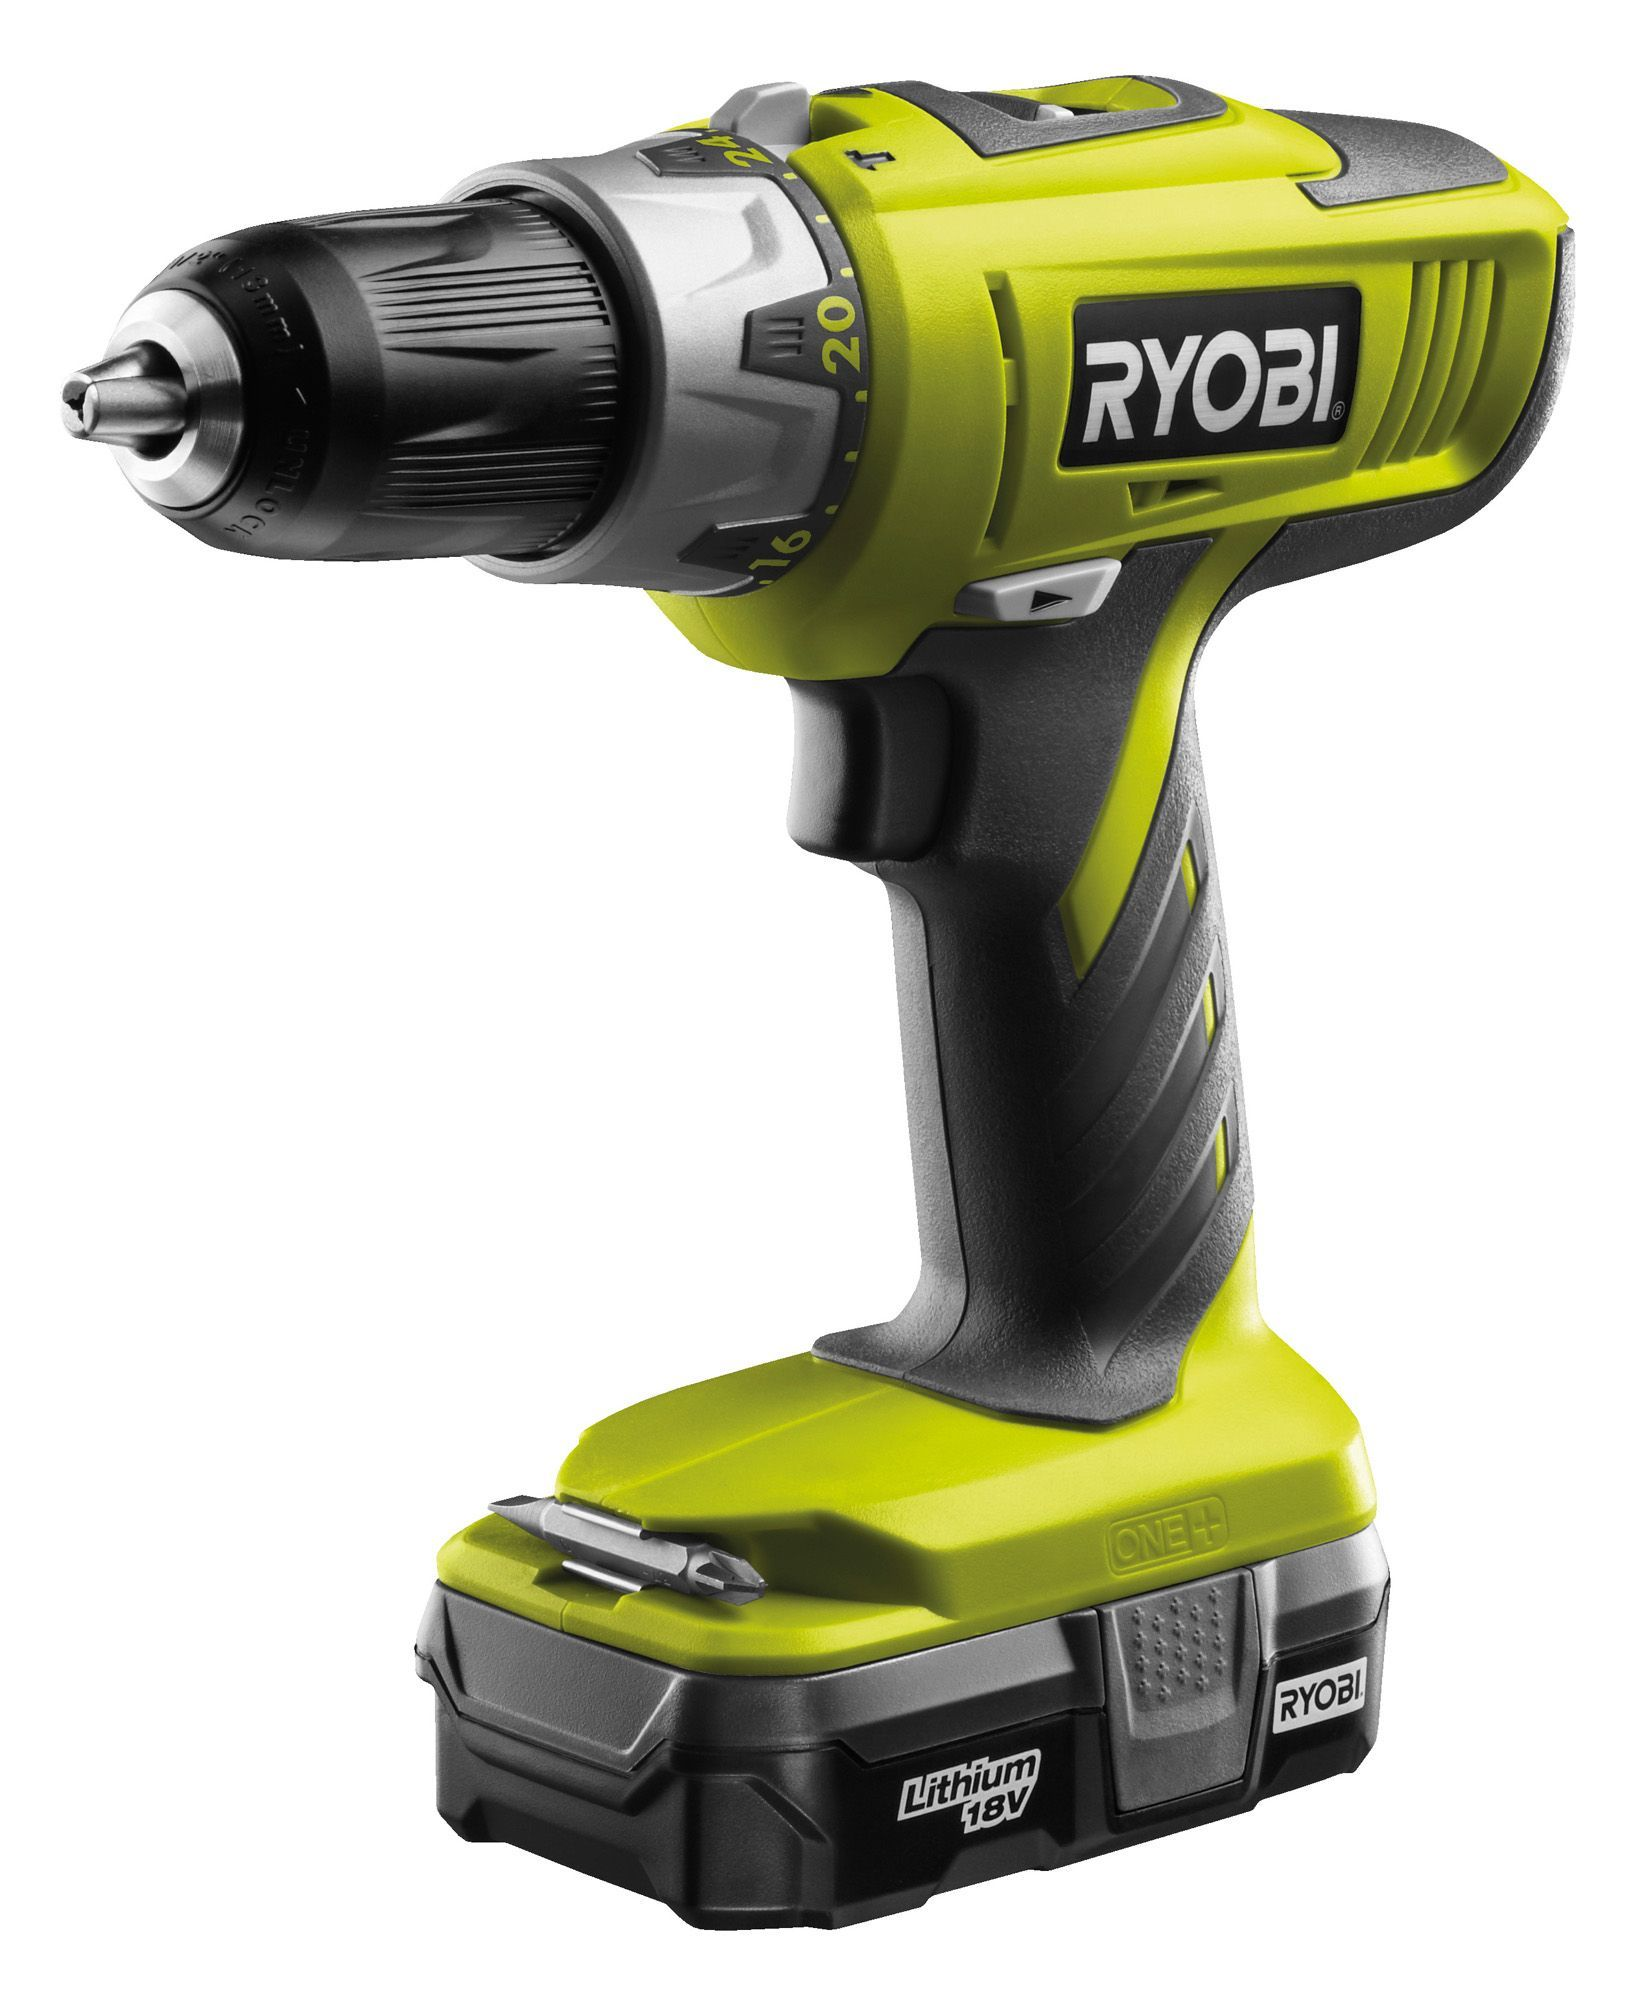 ryobi one cordless 18v 1 3ah li ion combi drill 1 battery. Black Bedroom Furniture Sets. Home Design Ideas